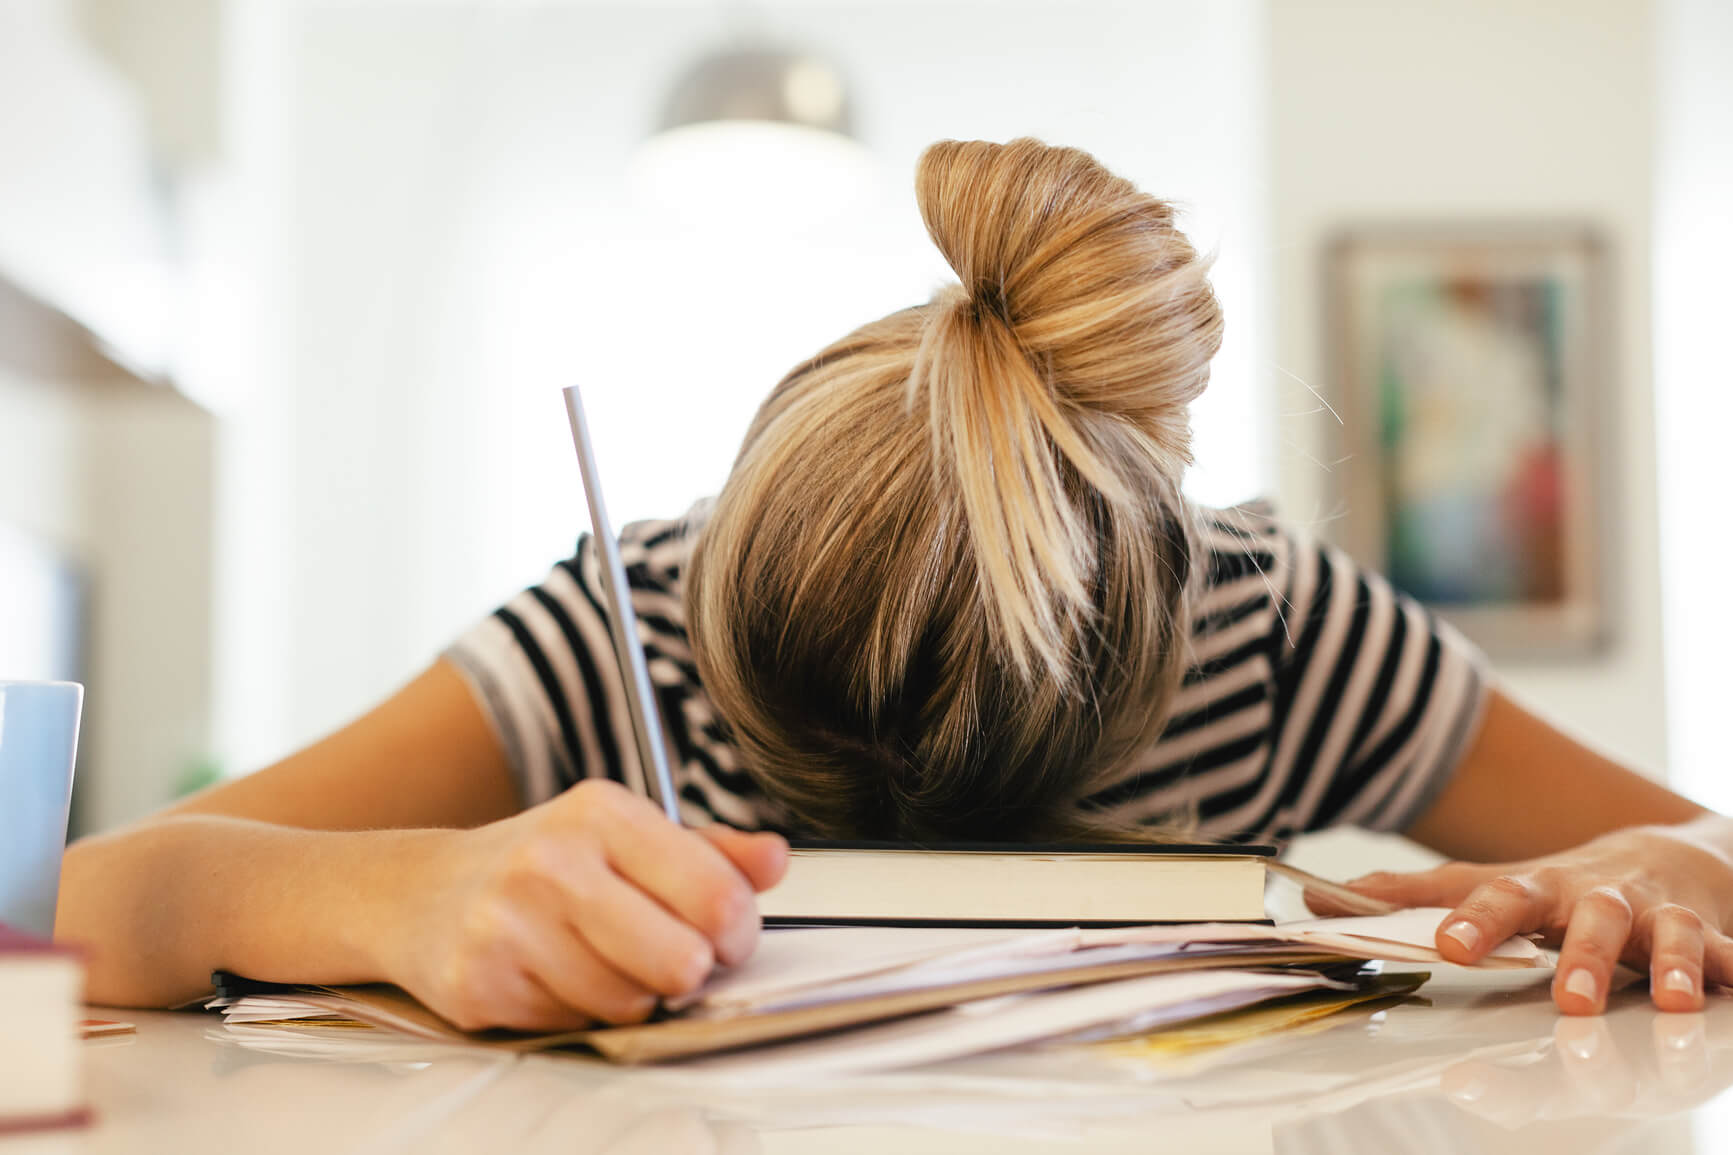 Coping With Stress As A Student